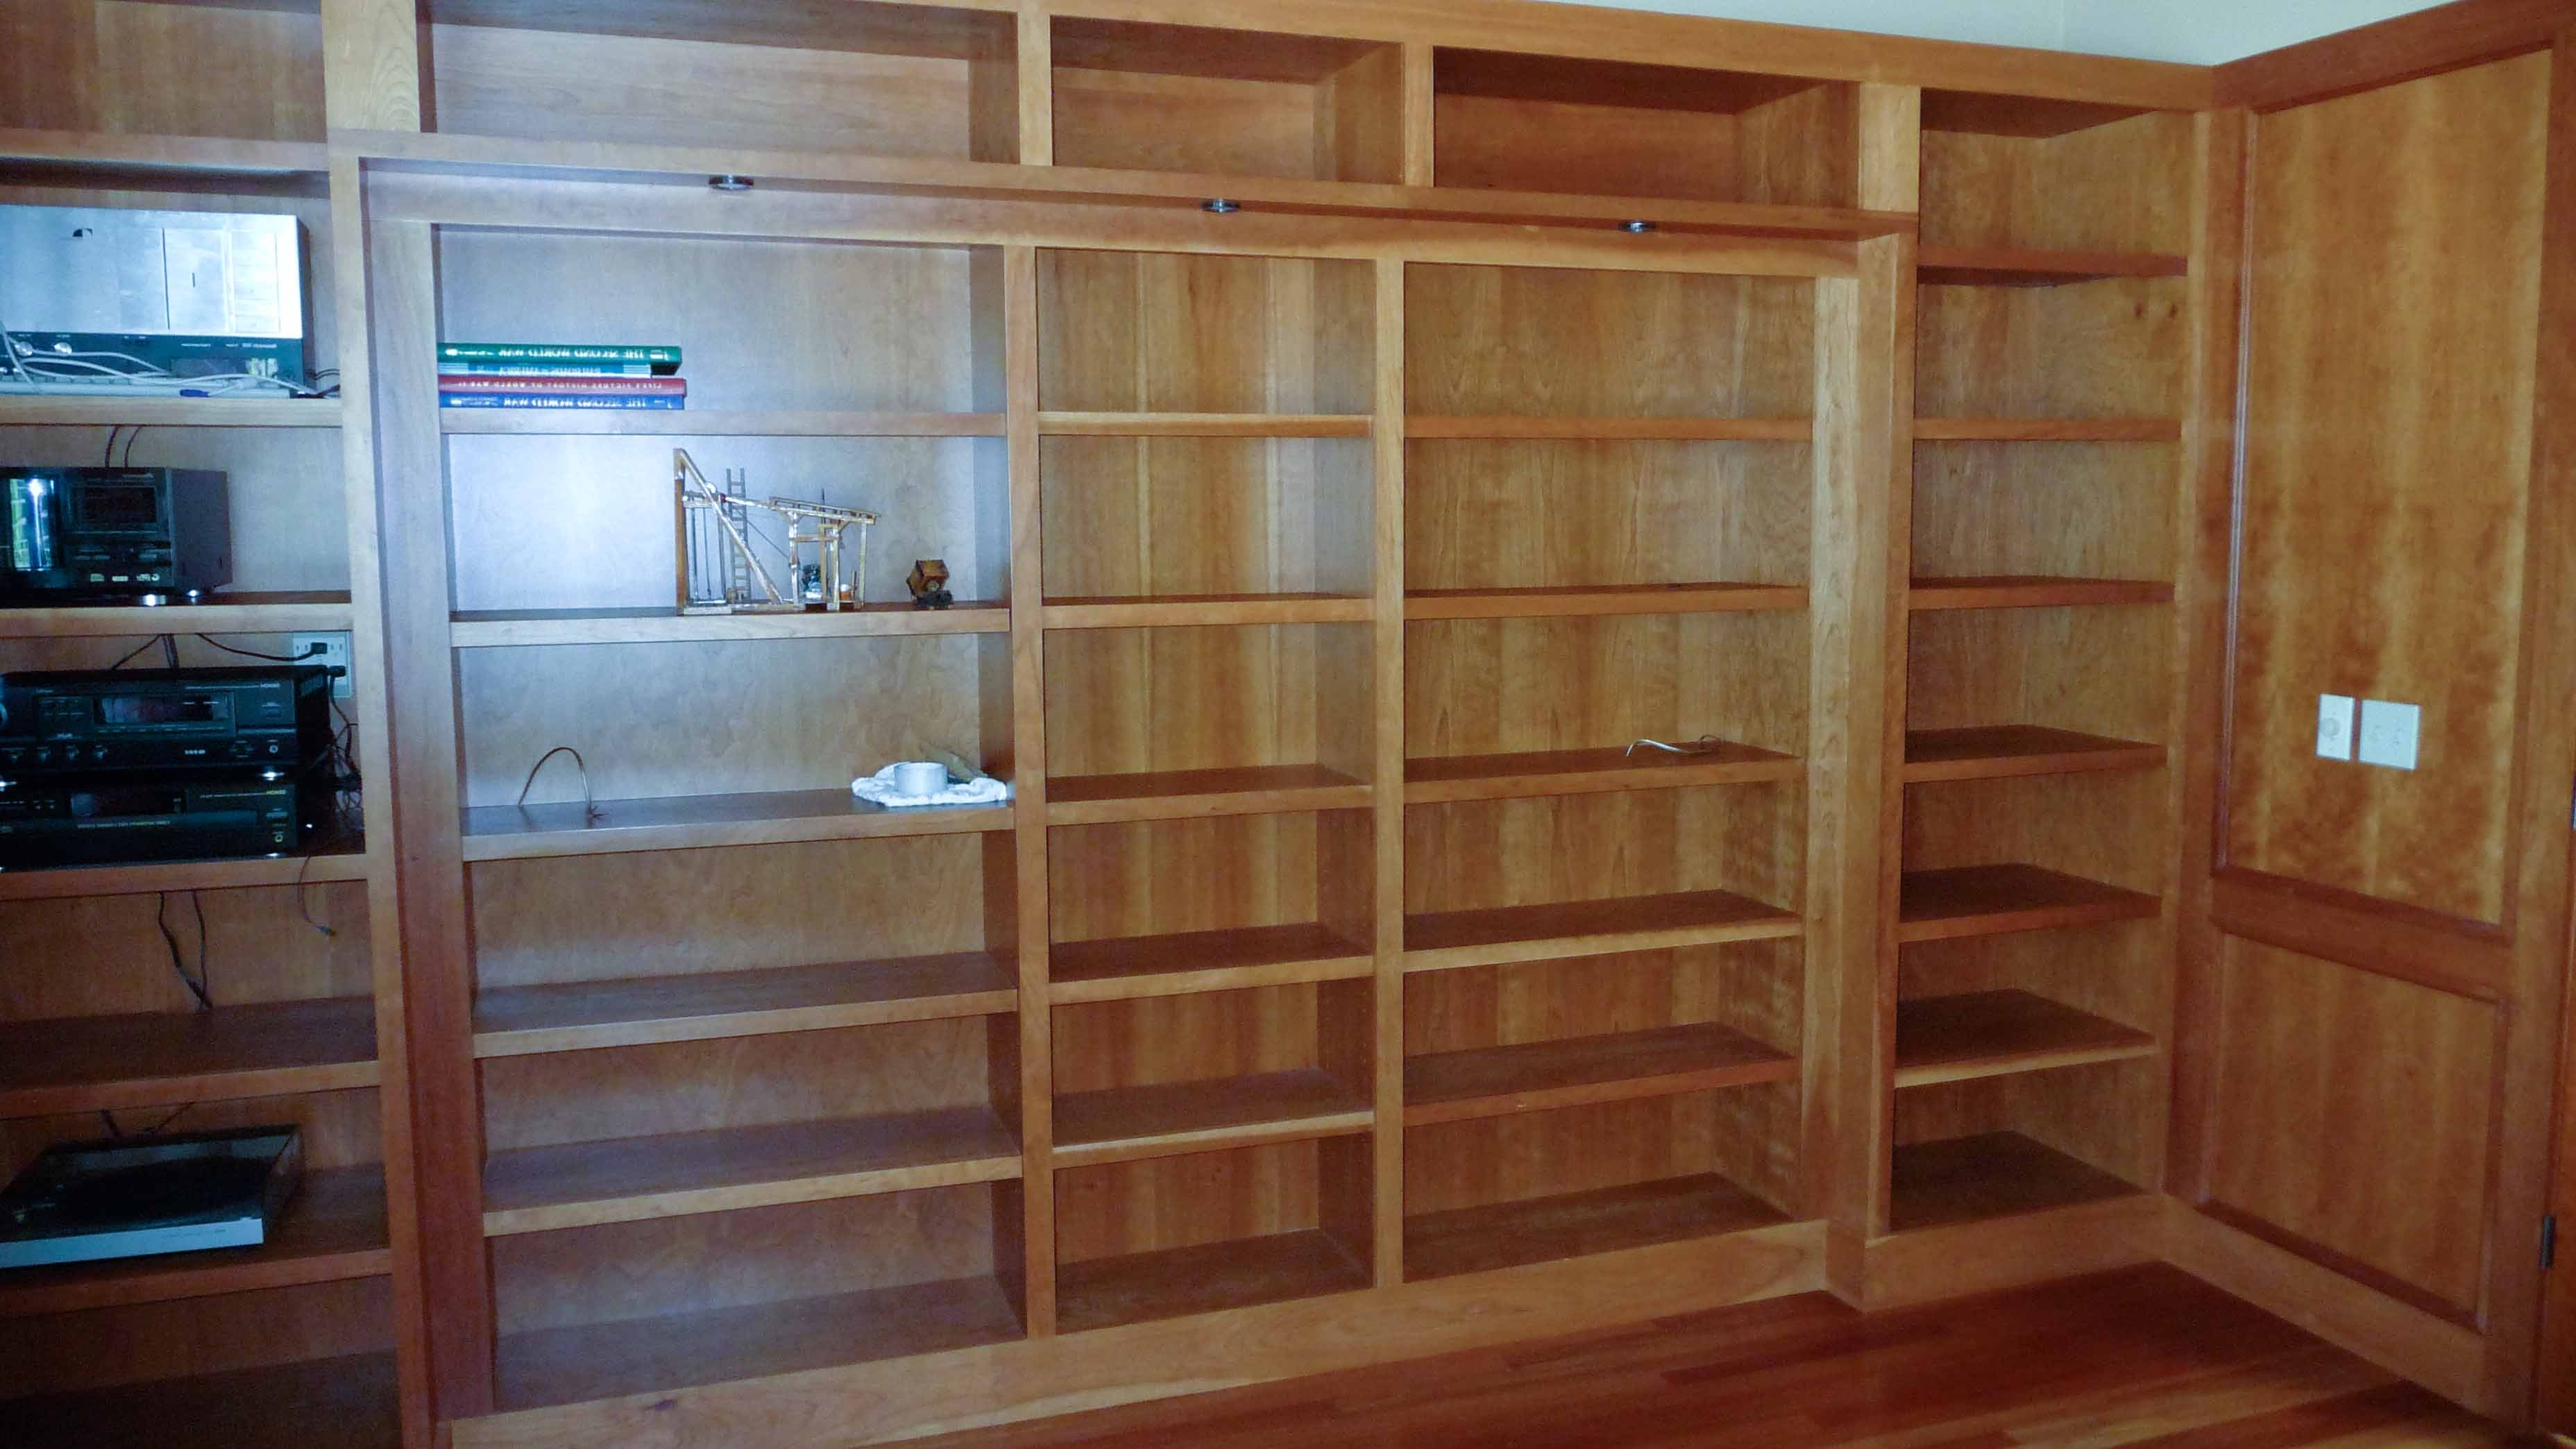 Best And Newest Built In Bookcases Kits Regarding Wall Units: Extraordinary Built In Bookcase Kit Built In Shelves (View 2 of 15)